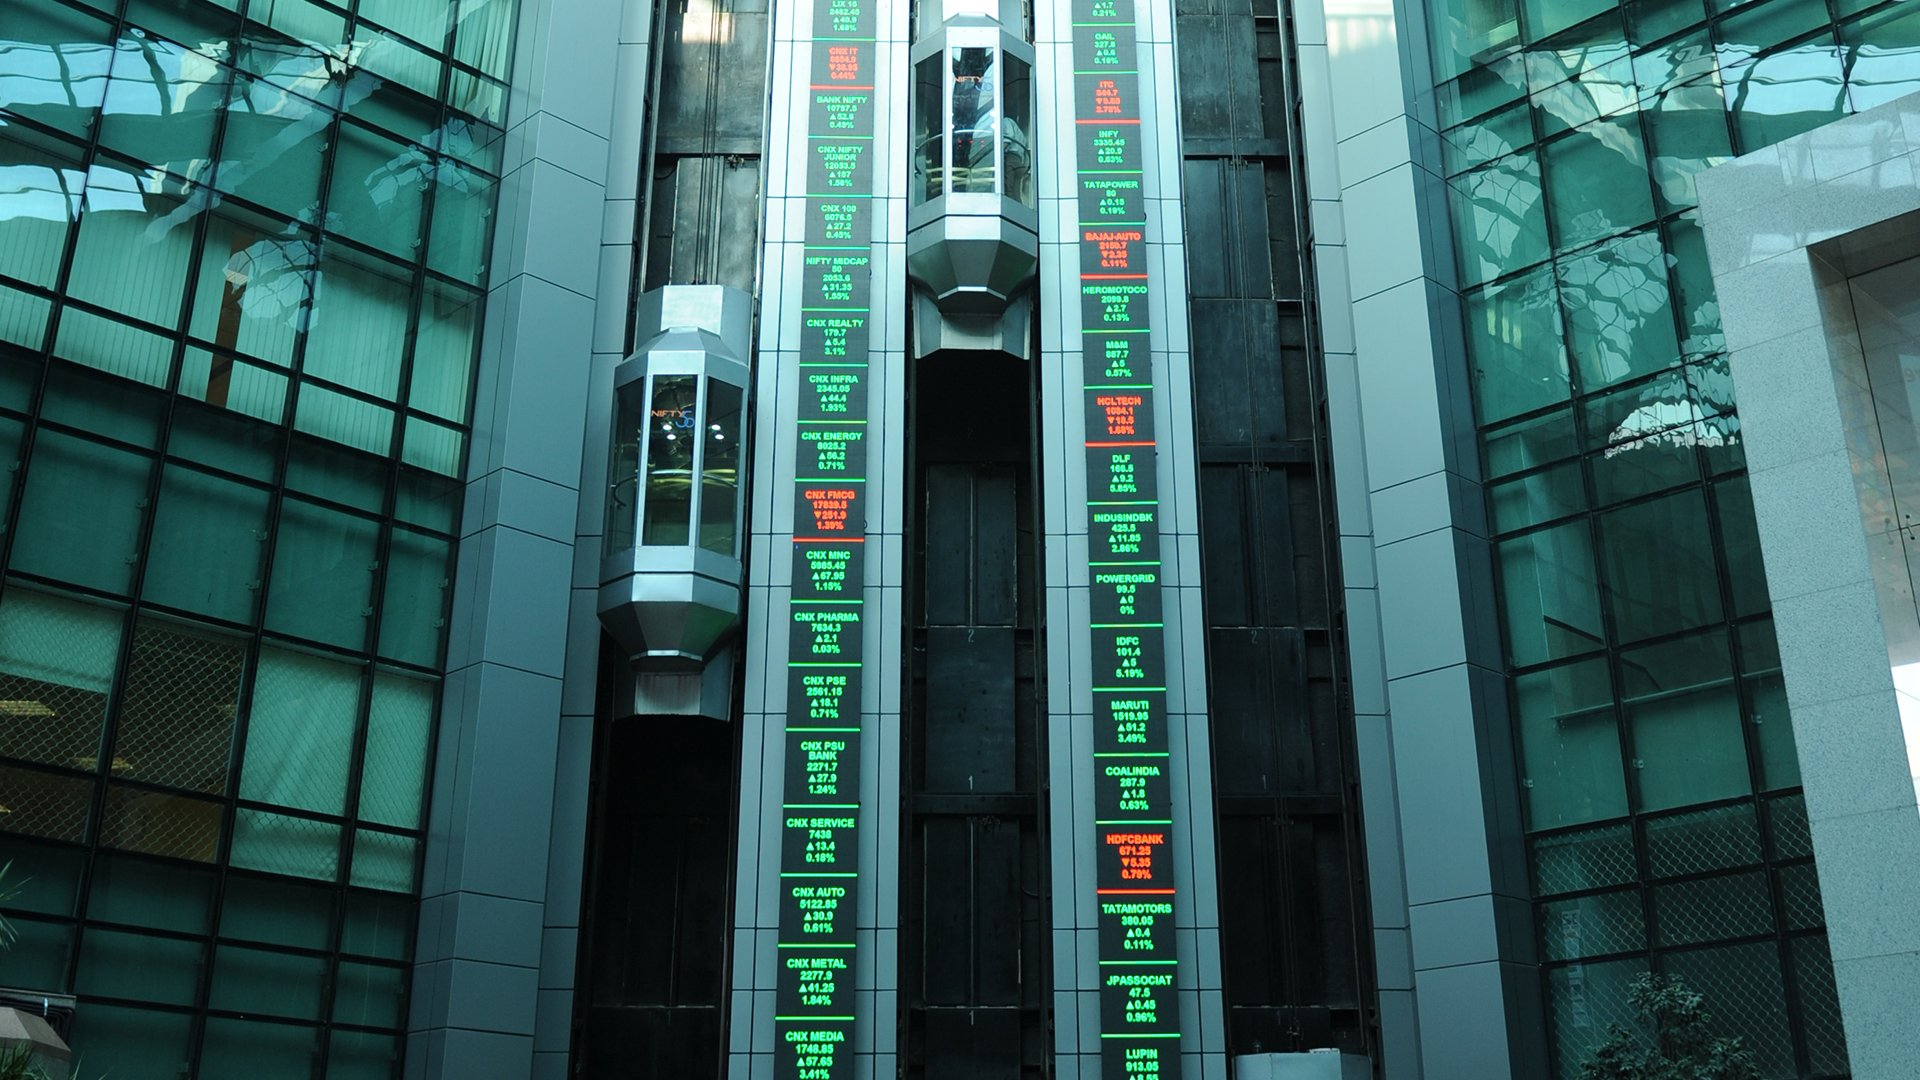 LED Tickers for Stock Markets